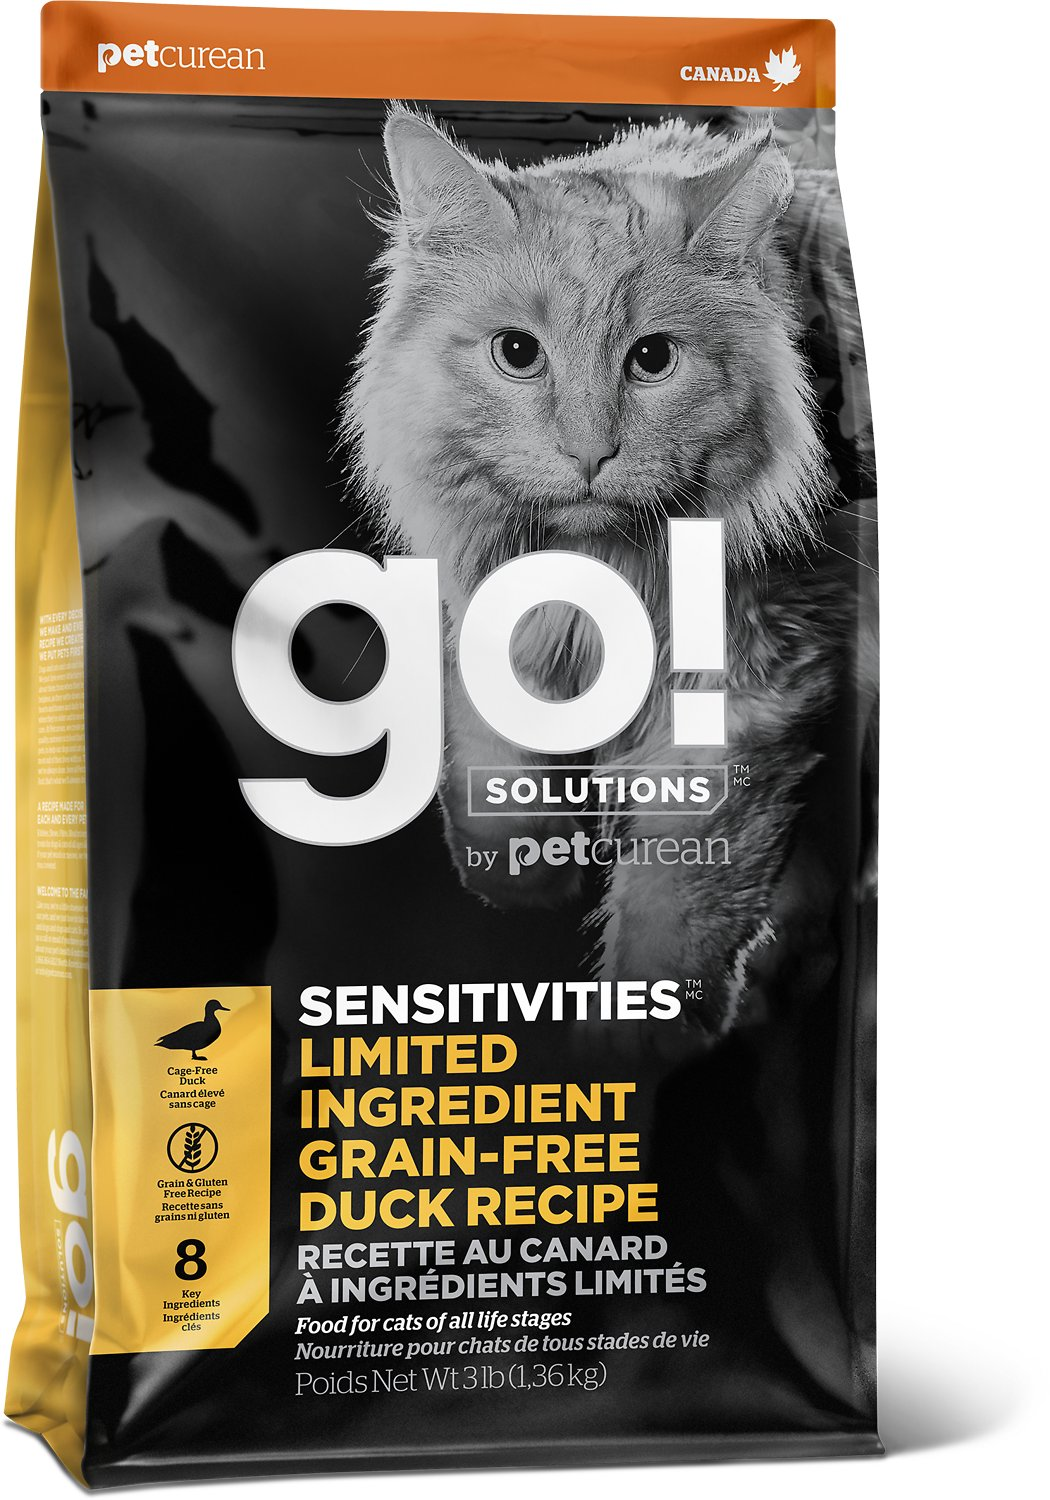 Petcurean Cat Go! Solutions Sensitivities Limited Ingredient Duck Grain-Free Dry Cat Food, 3-lb